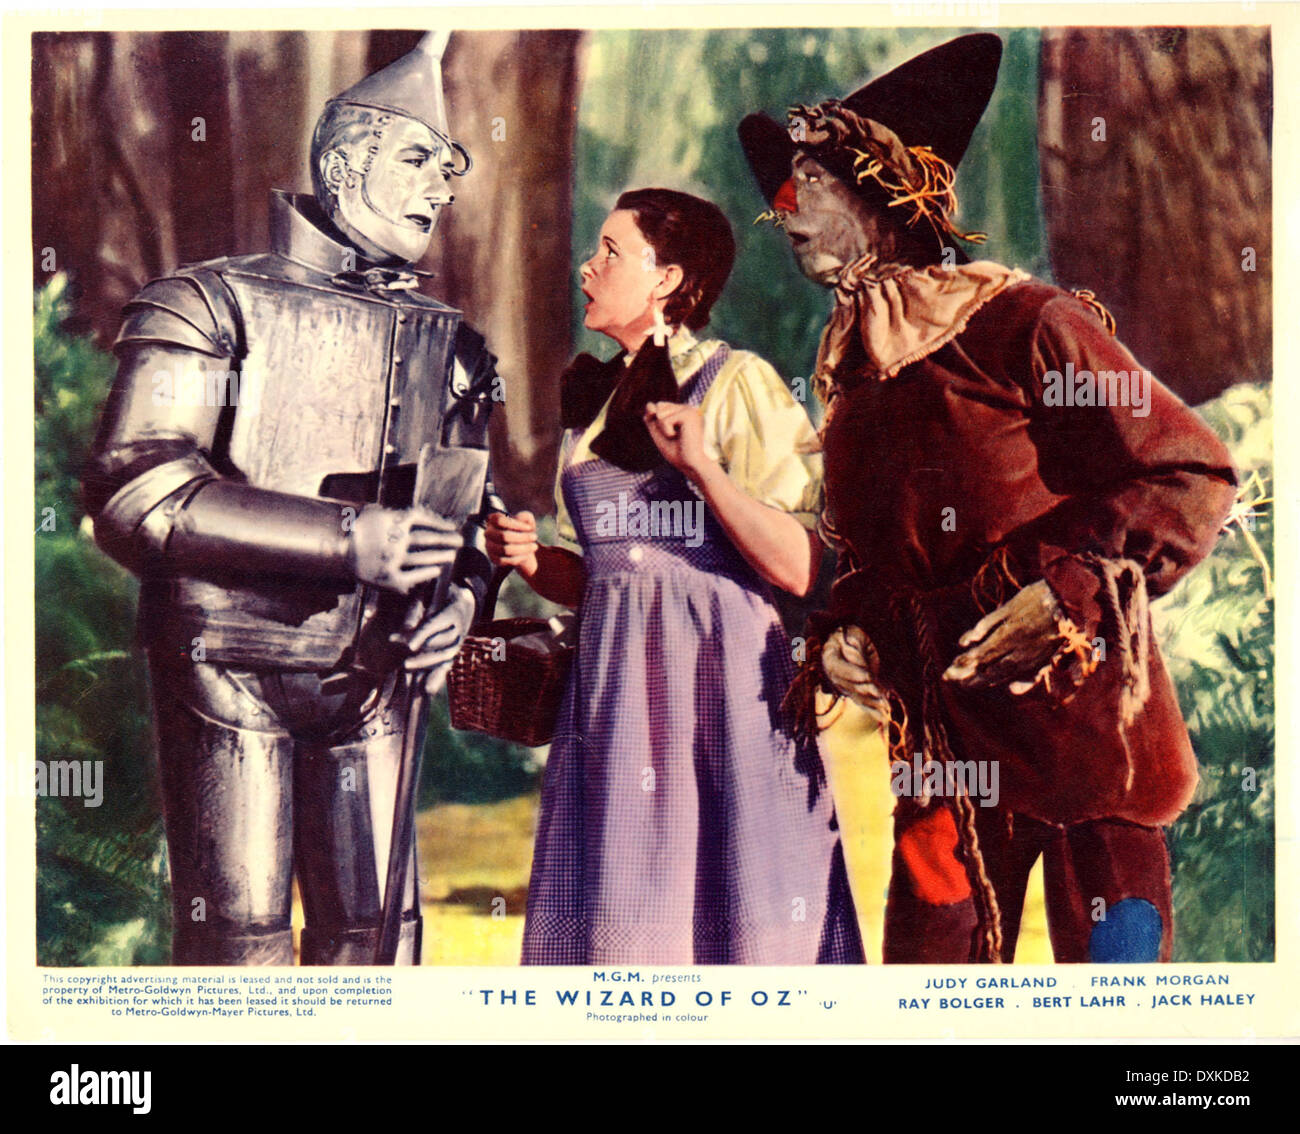 THE WIZARD OF OZ - Stock Image